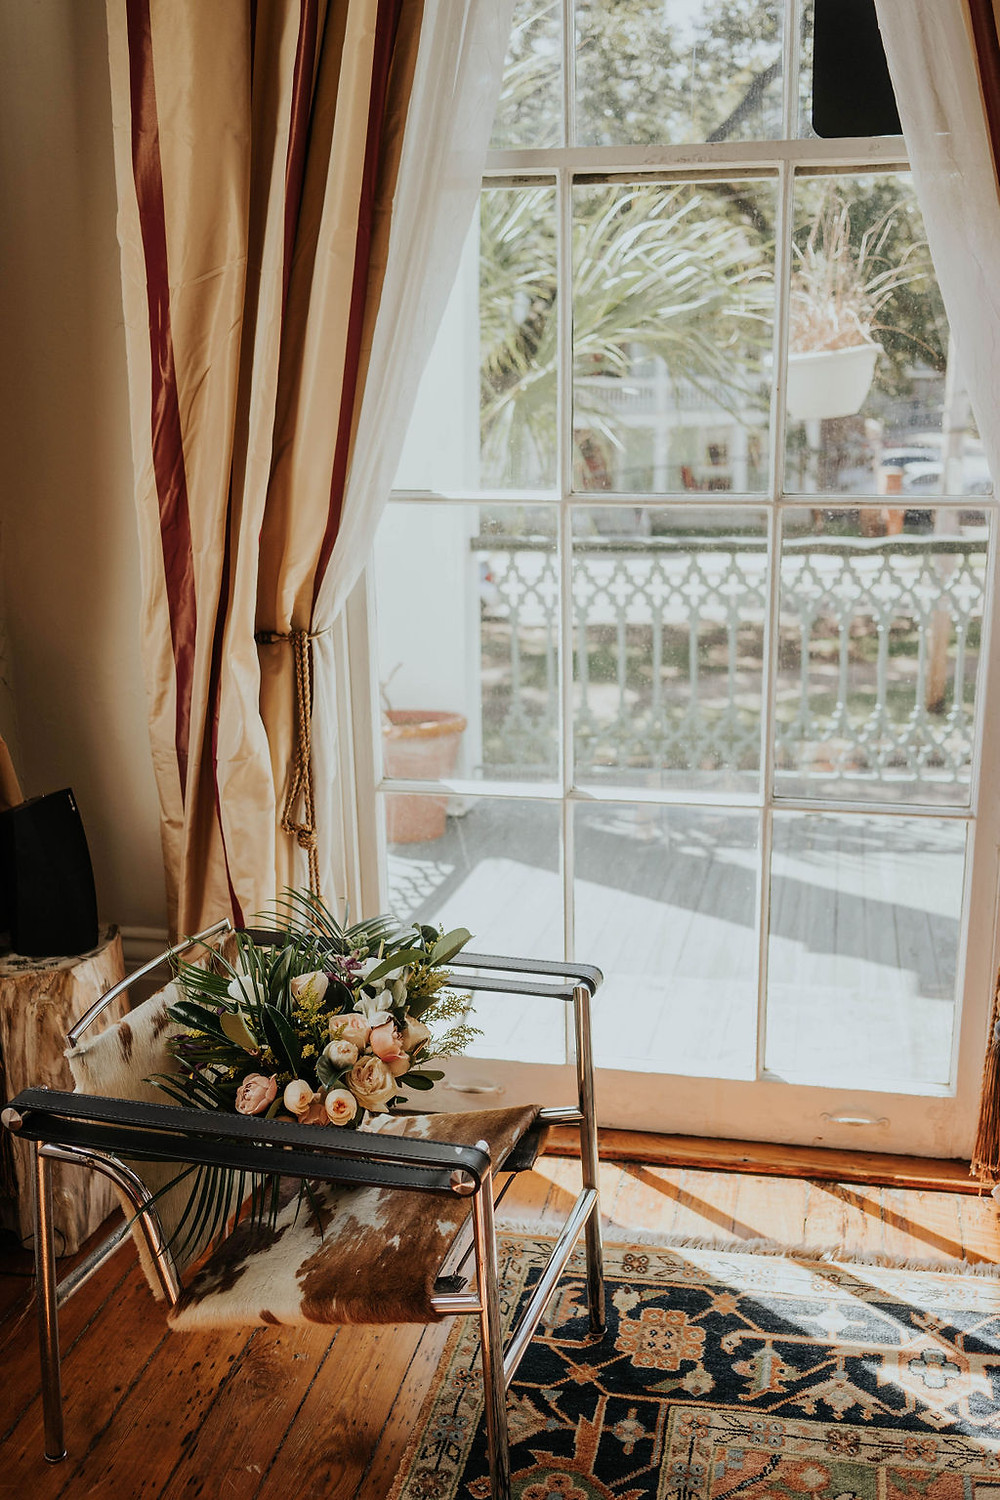 City Park Wedding with Sculpted Films and Lovegood Wedding & Event Rentals in New Orleans, Louisiana with Mismatched Chairs   Vintage Rentals with Rustic, Boho Details